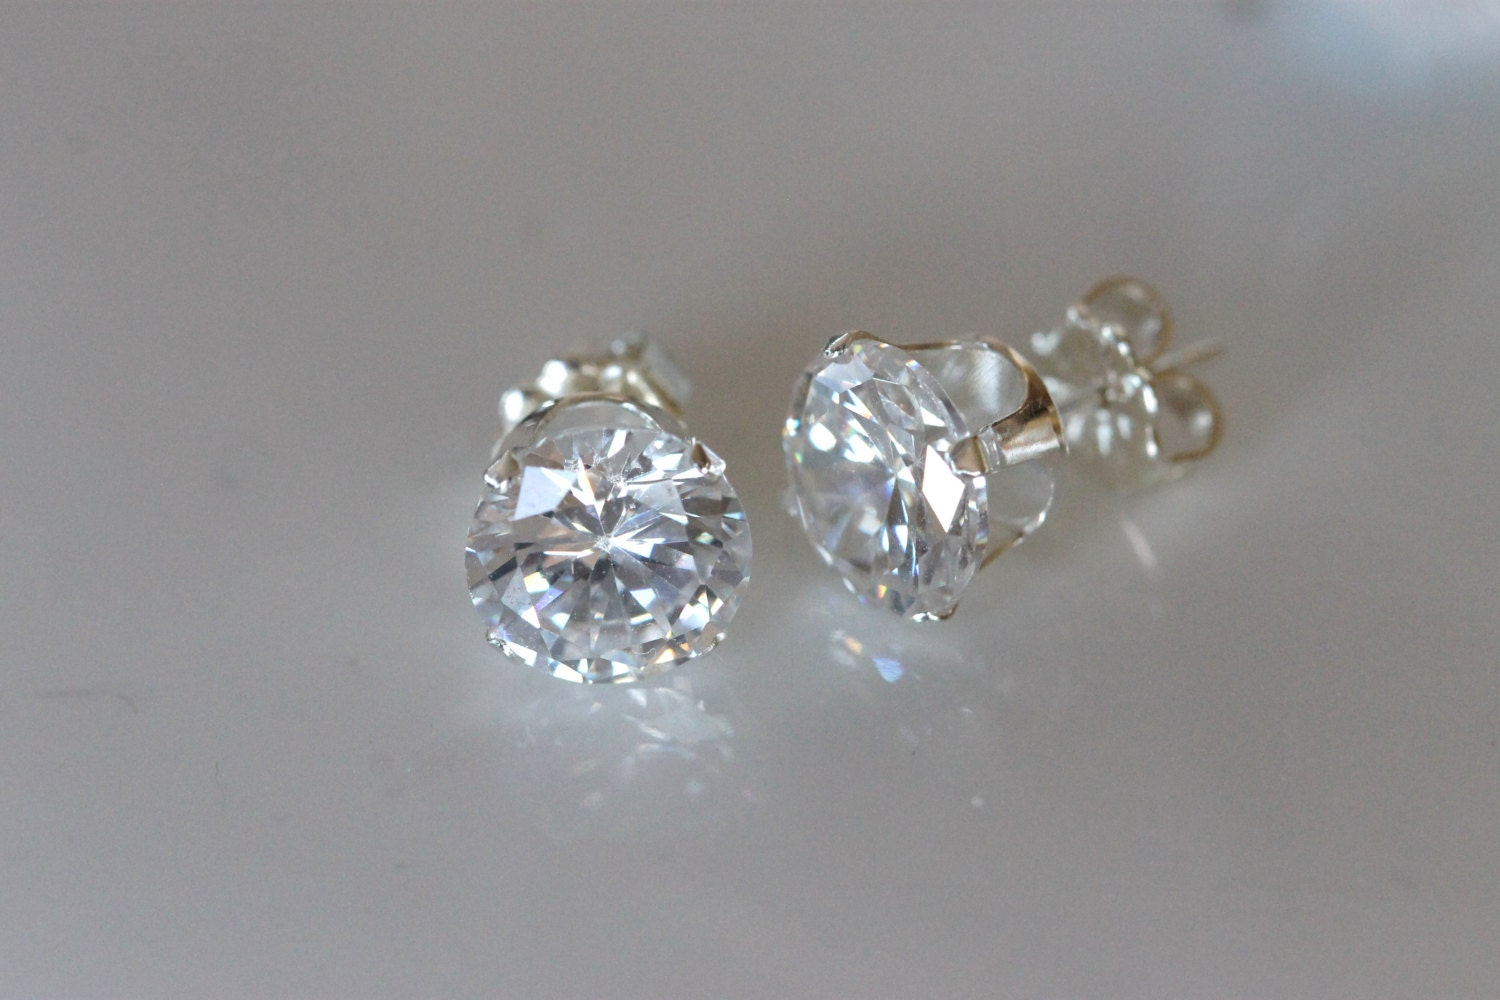 stock dormeuse diamond earrings alamy photo large very